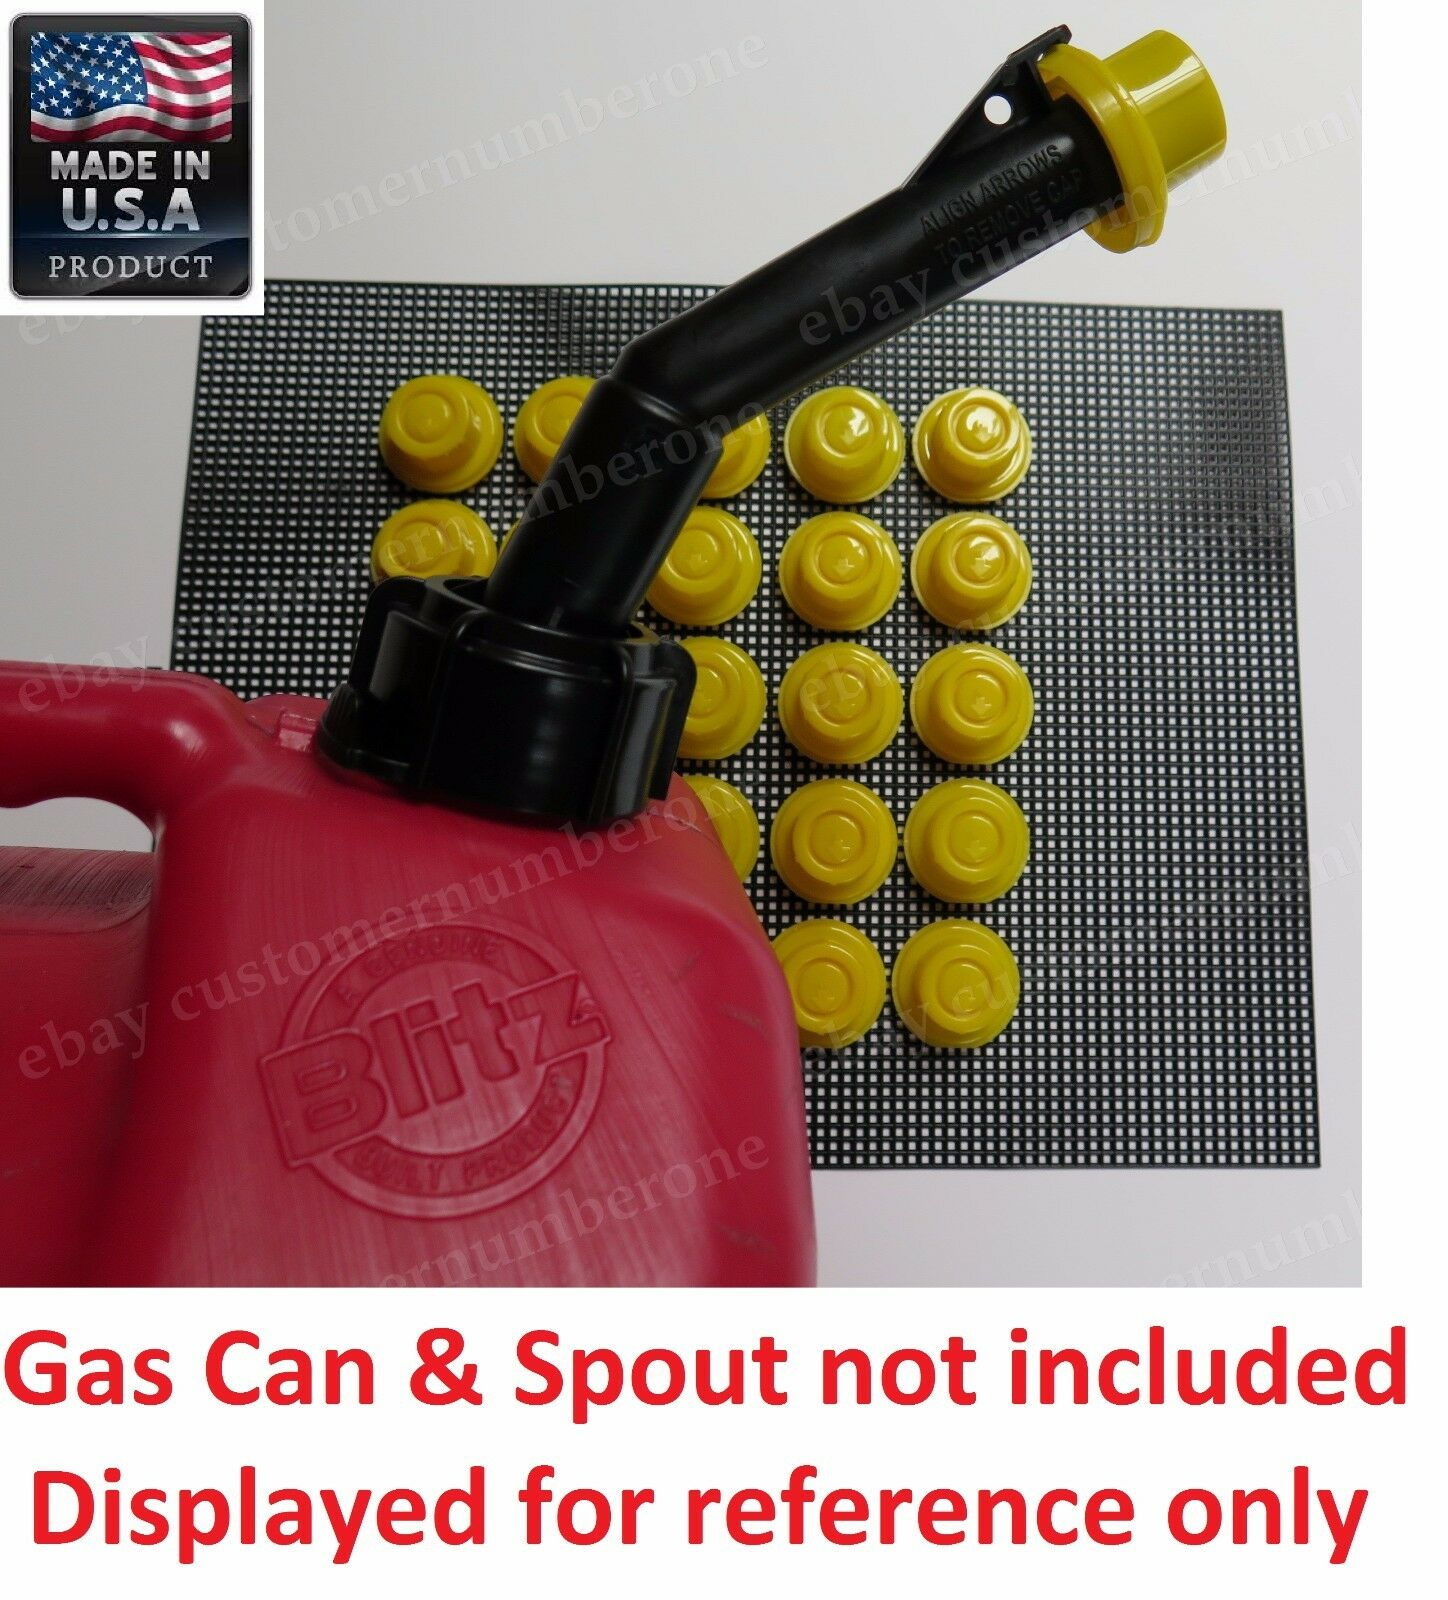 6-Pack NEW BLITZ GAS CAN SPOUT CAPS  #900302 #900092 #900094 SPOUT NOT INCLUDED